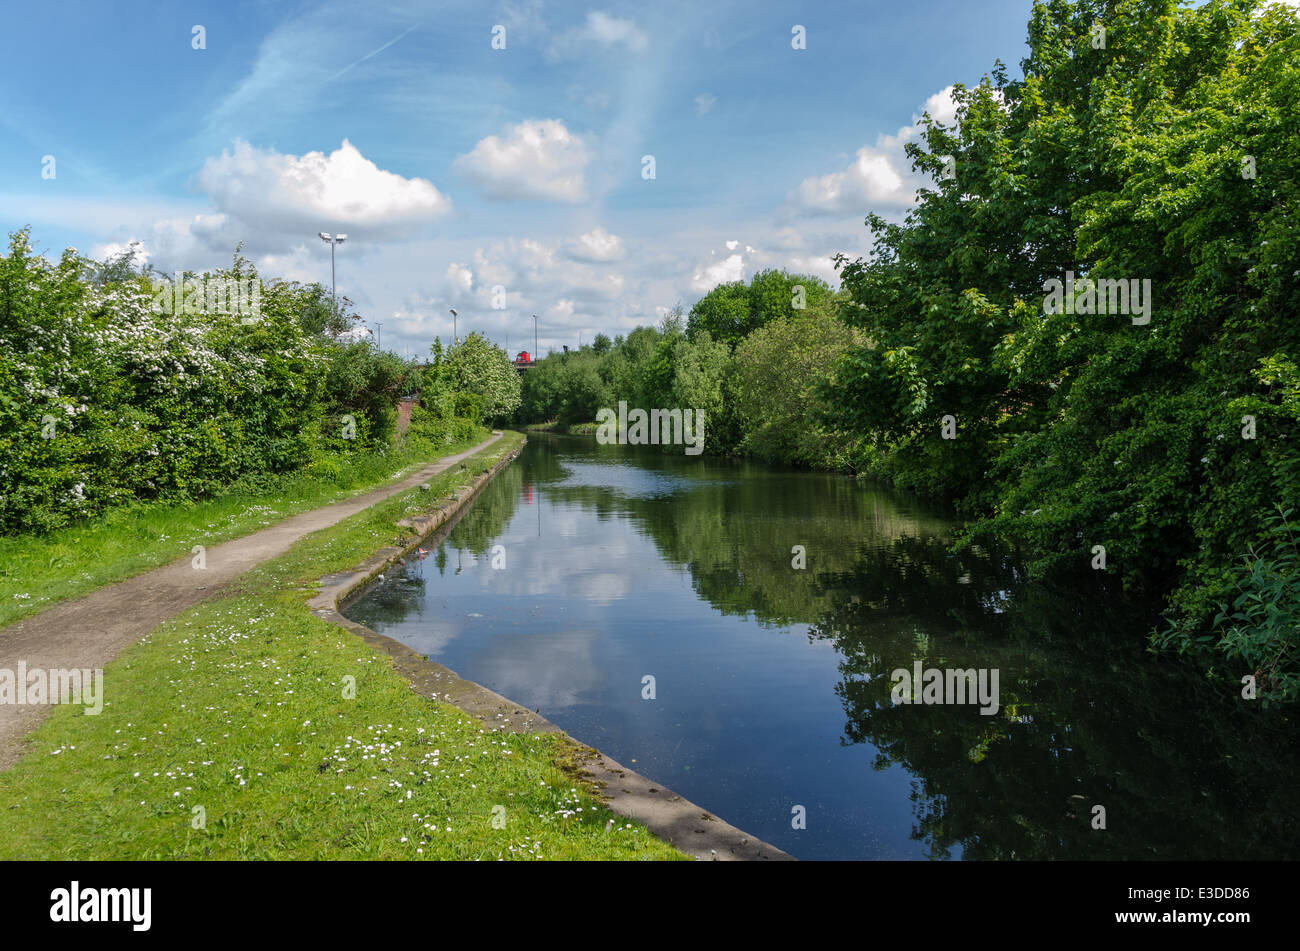 The River Rea at Nechells in the centre of Birmingham by Gravelly Hill Interchange (Spaghetti Junction) - Stock Image